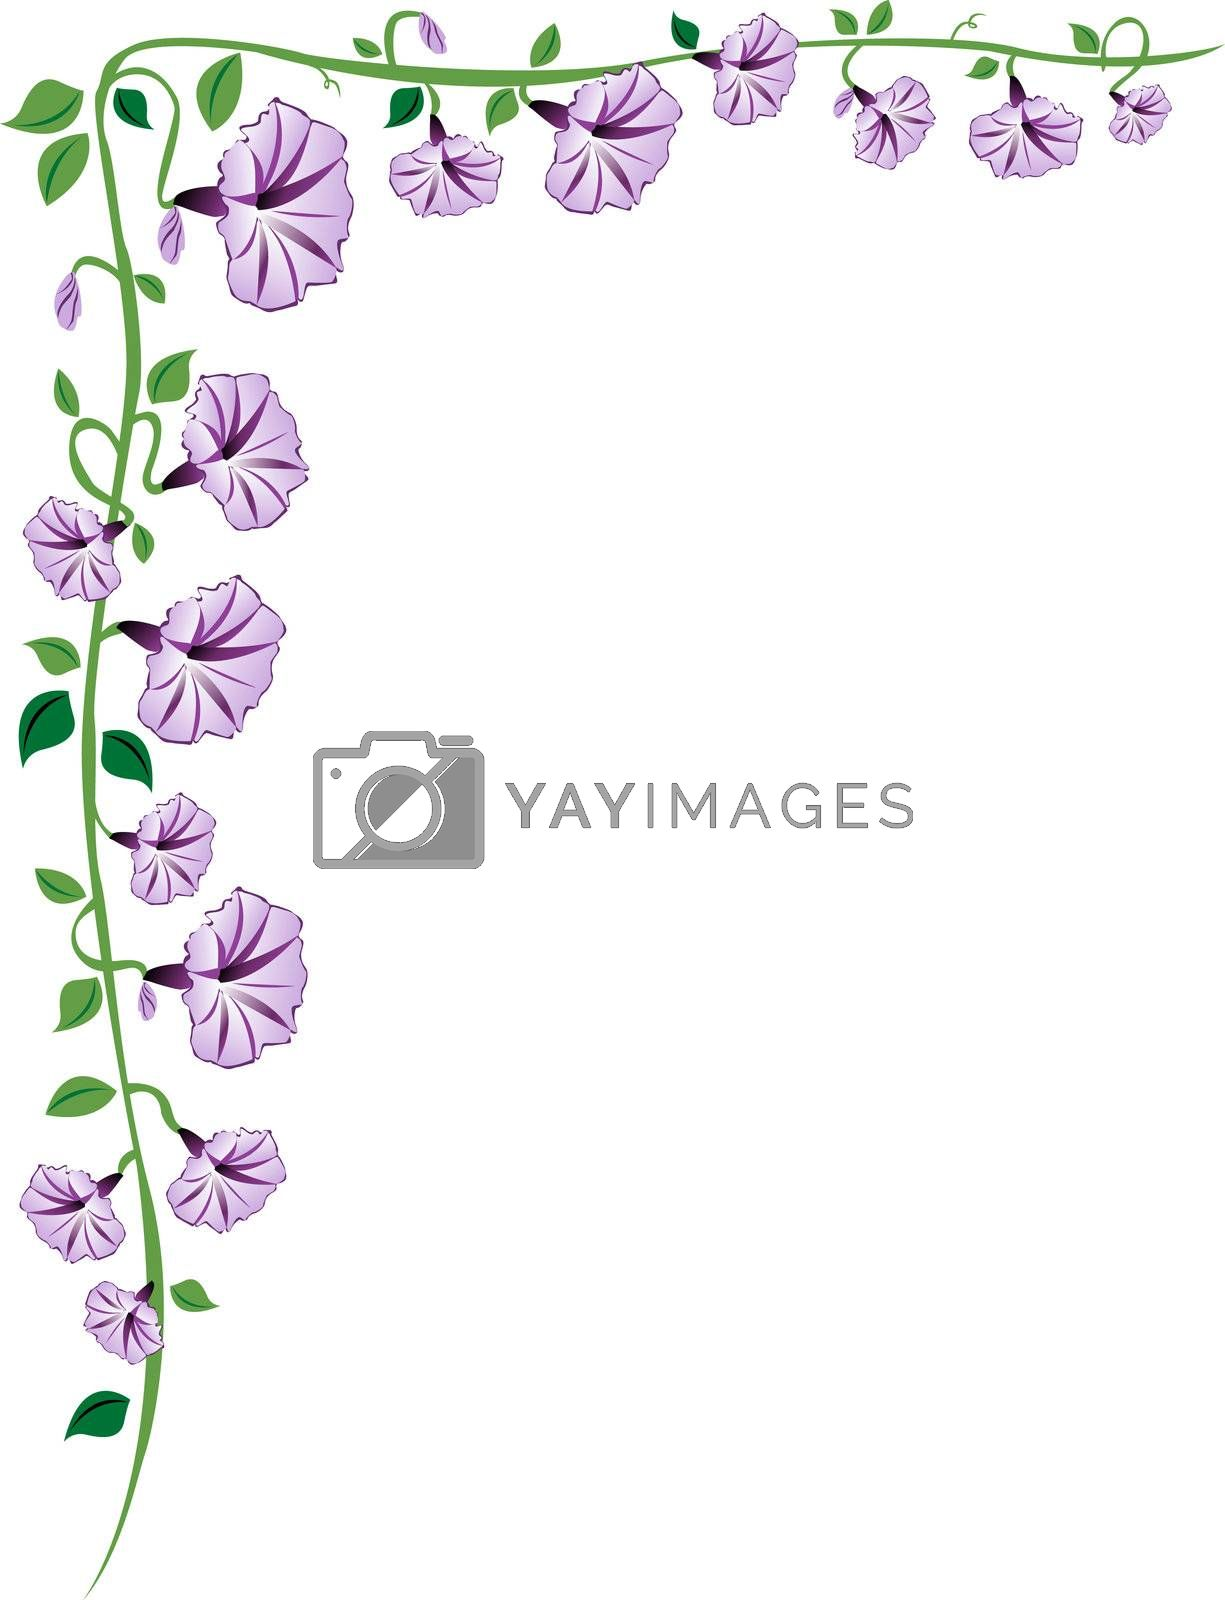 A morning glory vine border with purple flowers, leaves and buds.